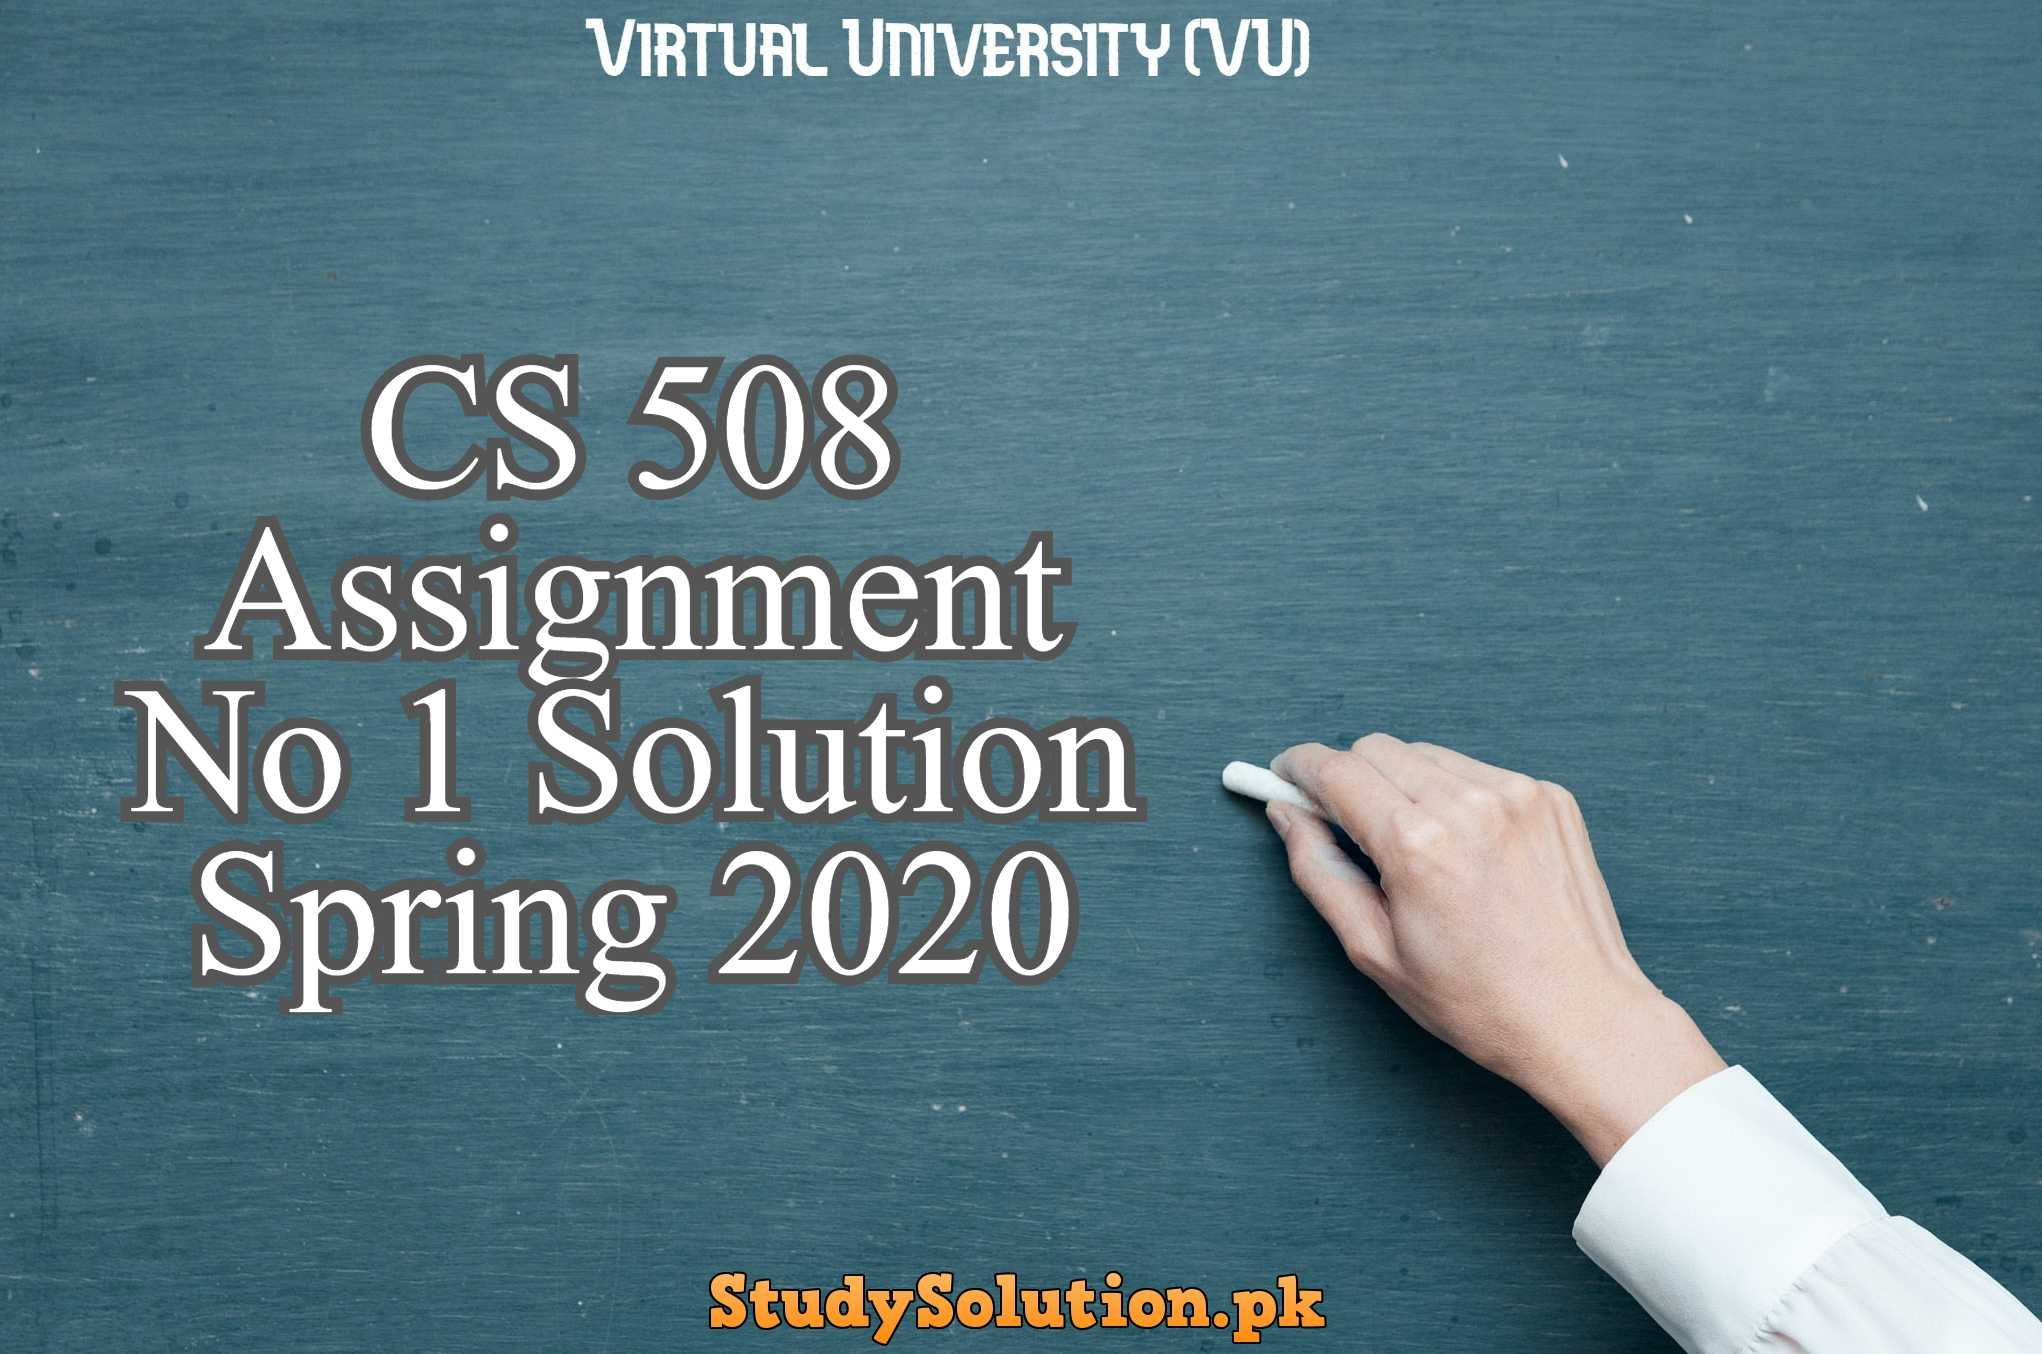 CS 508 Assignment No 1 Solution Spring 2020